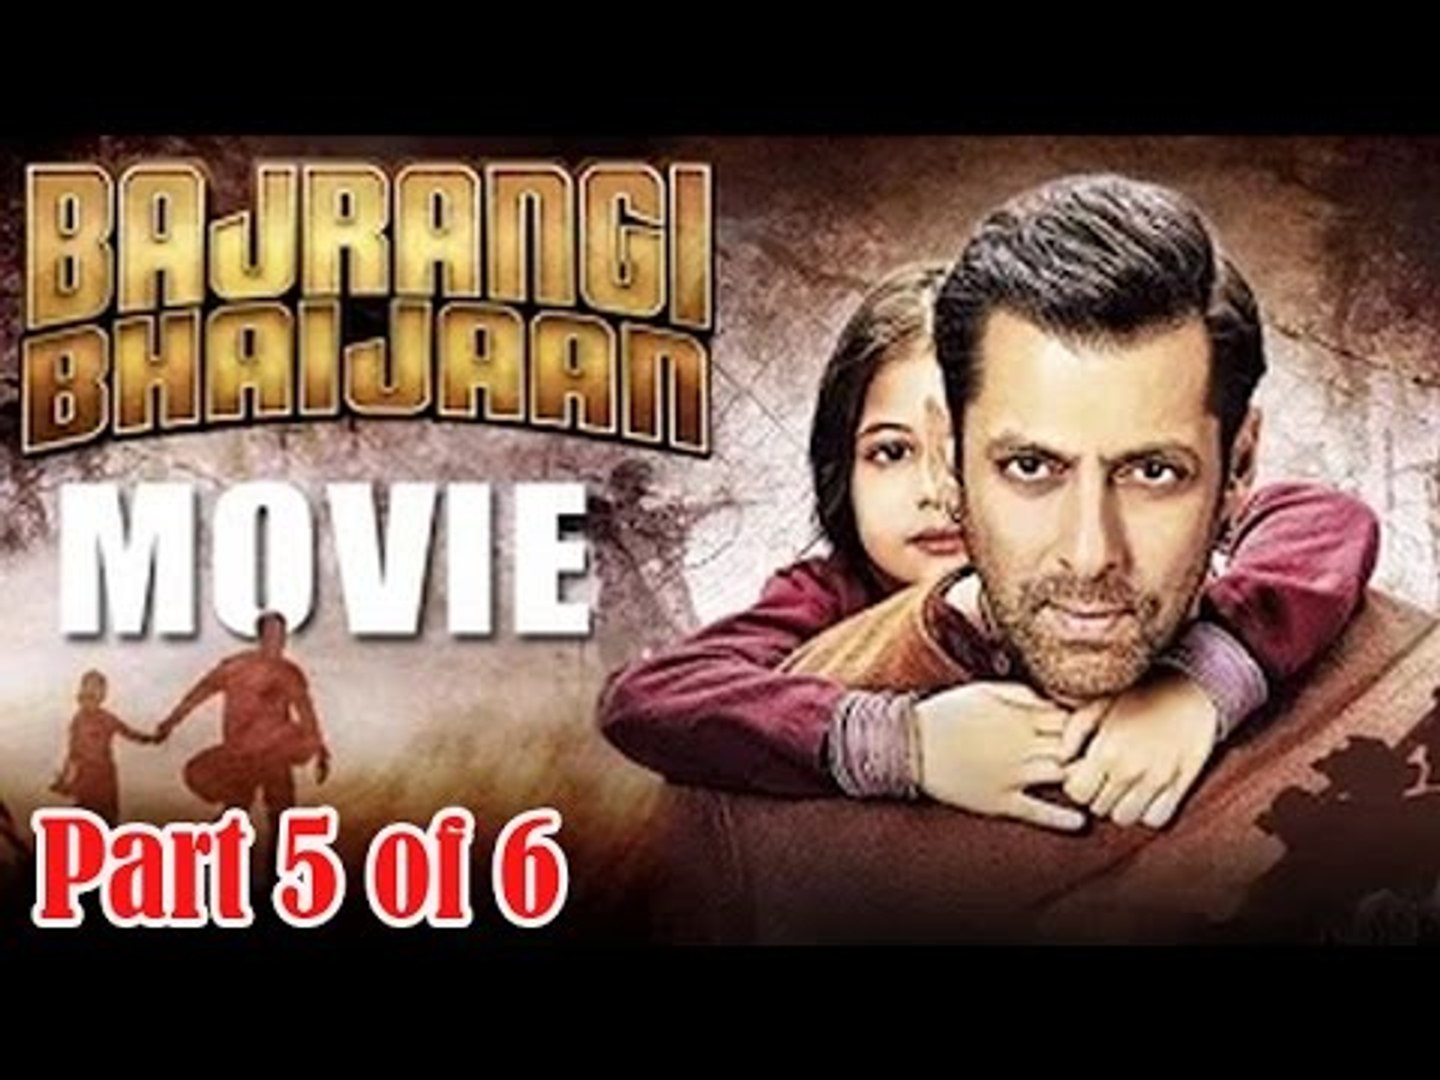 Bajrangi Bhaijaan Movie 2015 Part 5 Of 6 Salman Khan Kareena Kapoor Full Movie Promotions Video Dailymotion